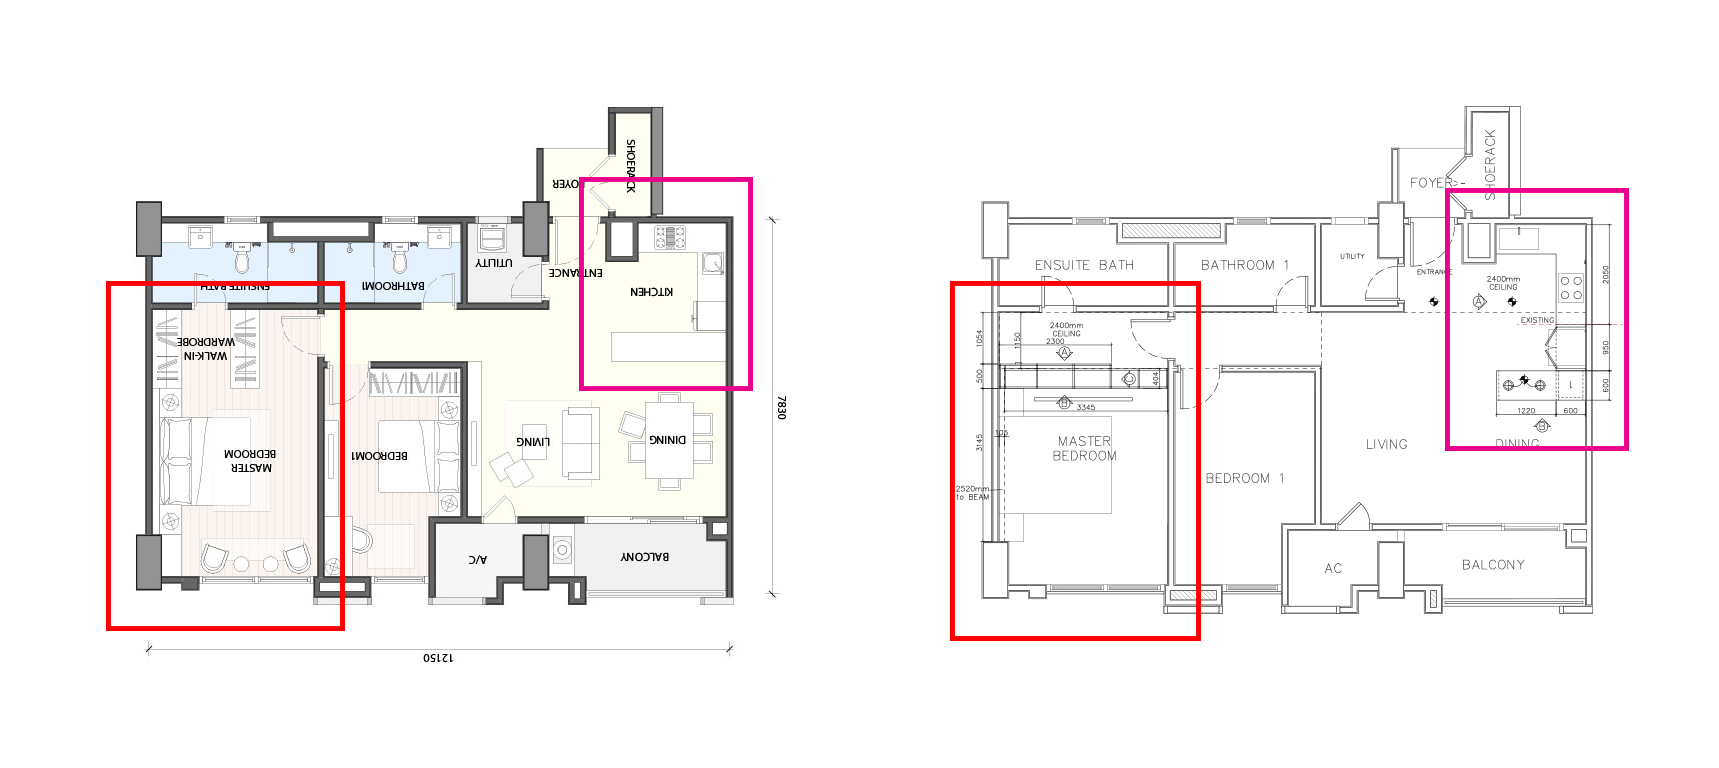 Left:  Proposed Layout for the unit Type 3A1.  Right:  My proposed layout.  As you can see the kitchen layout are basically the same, with the exception of the cooktop and basin orientation, as well as the length of the island. The bedroom wardrobe layout are vastly different; the developer proposed 2 seperate wardrobes at the entry to the ensuite and my proposal is a single long wardrobe next to the bedroom door - the intent is that the circulation from the bedroom door to the ensuite is not interrupted and creating a partition for the ensuite and bedroom with the wardrobe space.